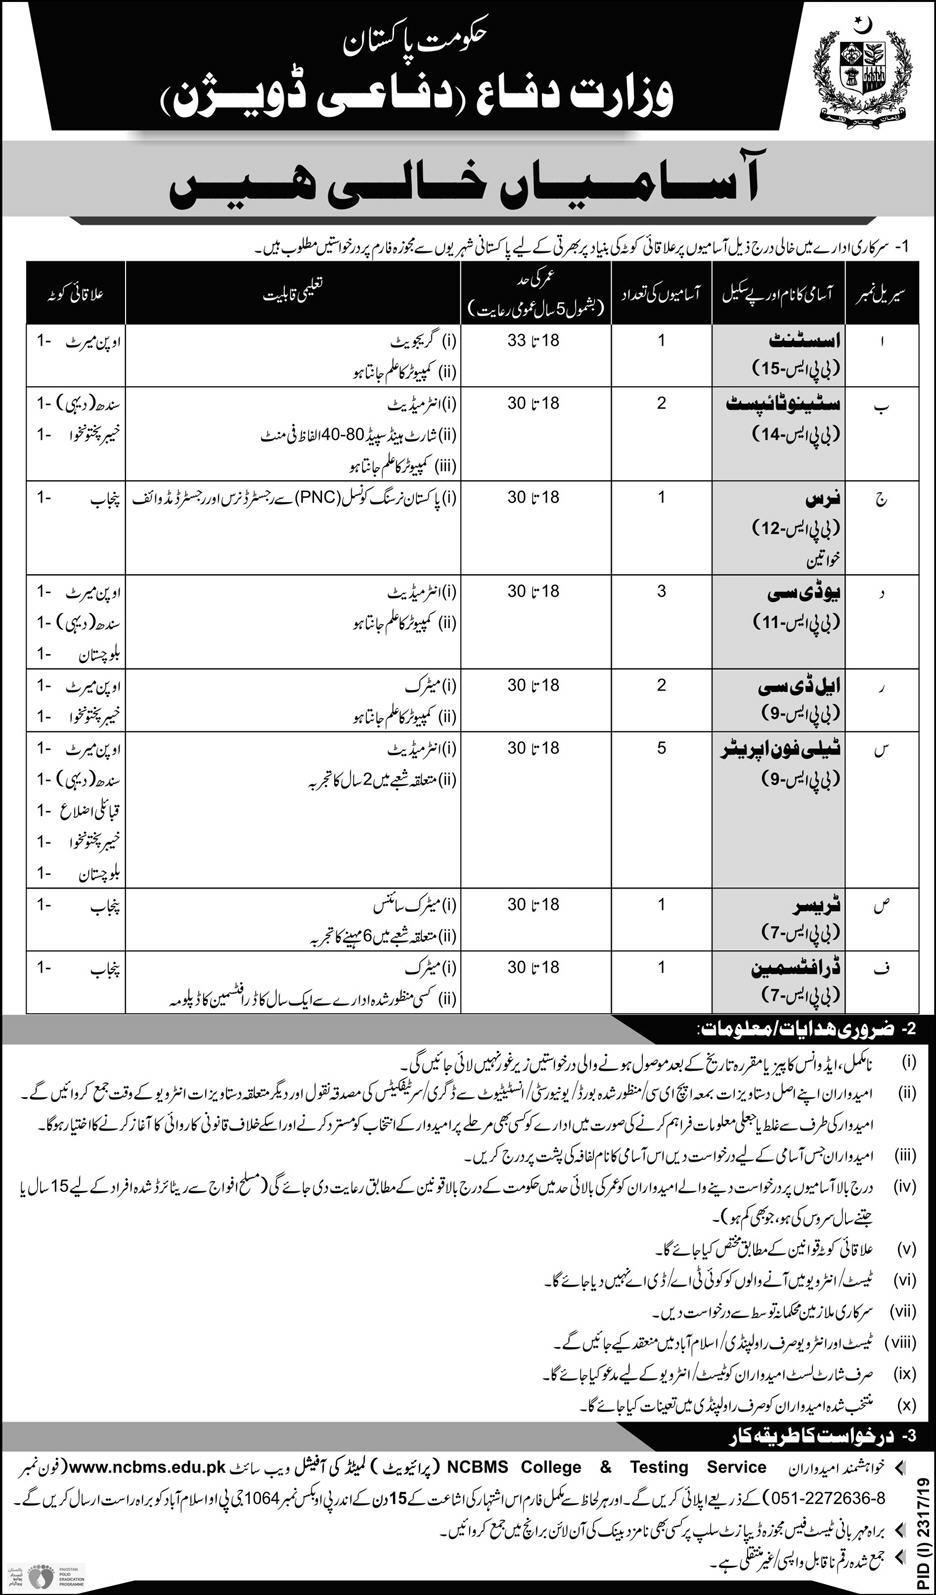 Ministry of Defence Jobs 2019 Pakistan